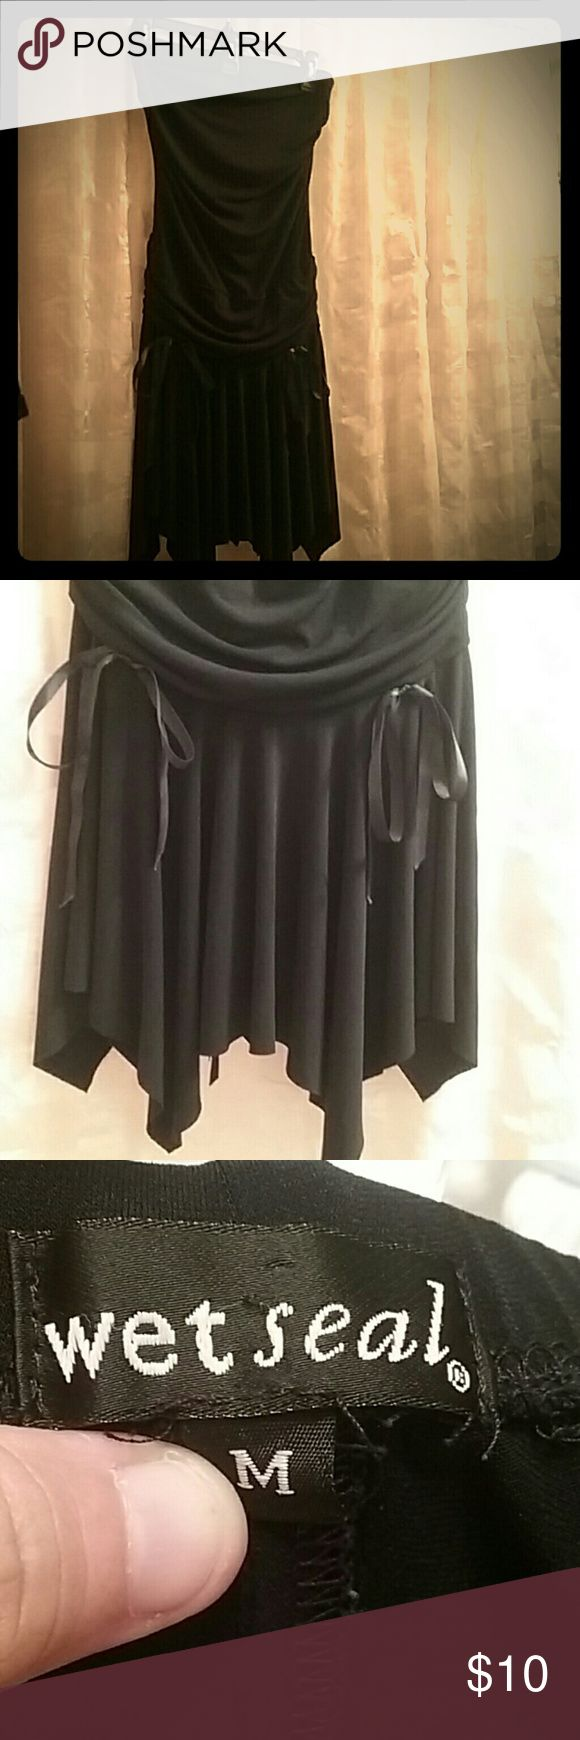 :)?? $10 Deal.  WET SEAL Tube top LBD Dress is tube top dress, ruffled on bottom, Has 4  string bows to tie: 2 in front and 2 in back, 92 % Polyester, 8% Spandex, Gently worn, No holes, stains, wrips, or snags, this dress i used for Halloween a couple of years ago as a witch. Makes a great WITCH Costume. VERY SEXY AND GREAT WITH HEELS. :) Wet Seal Dresses Strapless